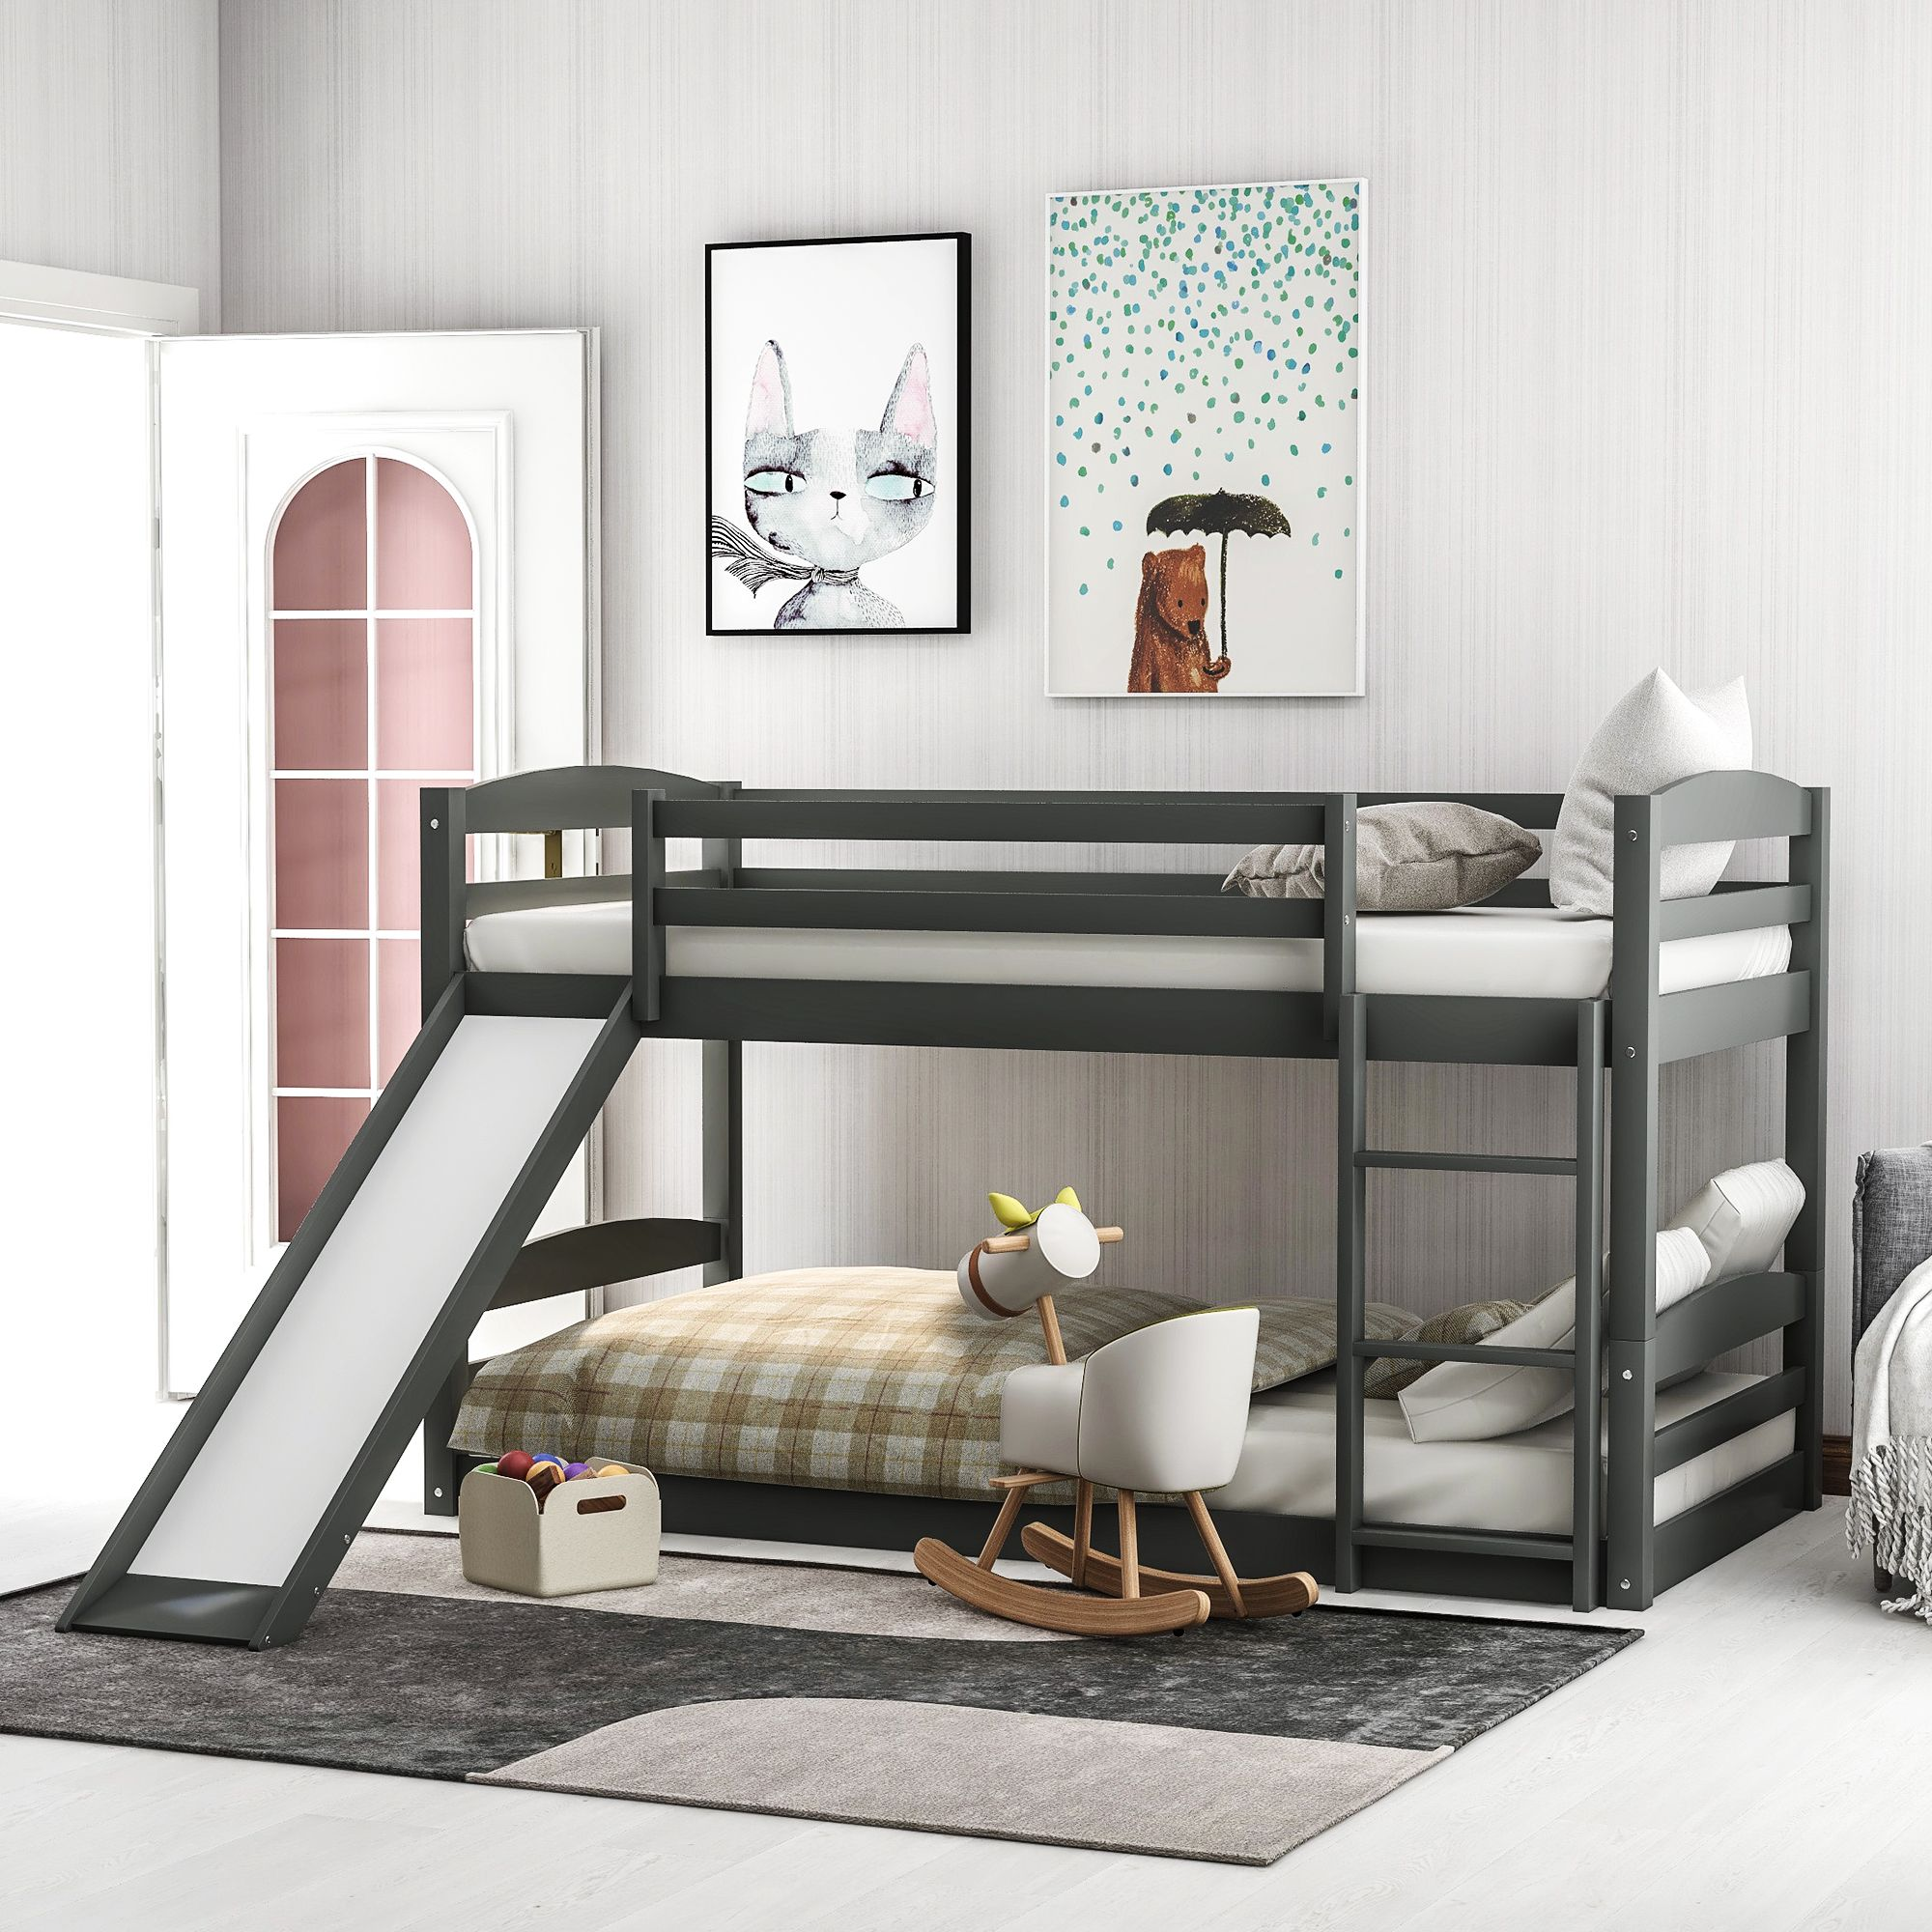 Dillon Extra Long Twin Over Twin Bunk Bed Twin Bunk Beds Modern Bunk Beds Bed Interior